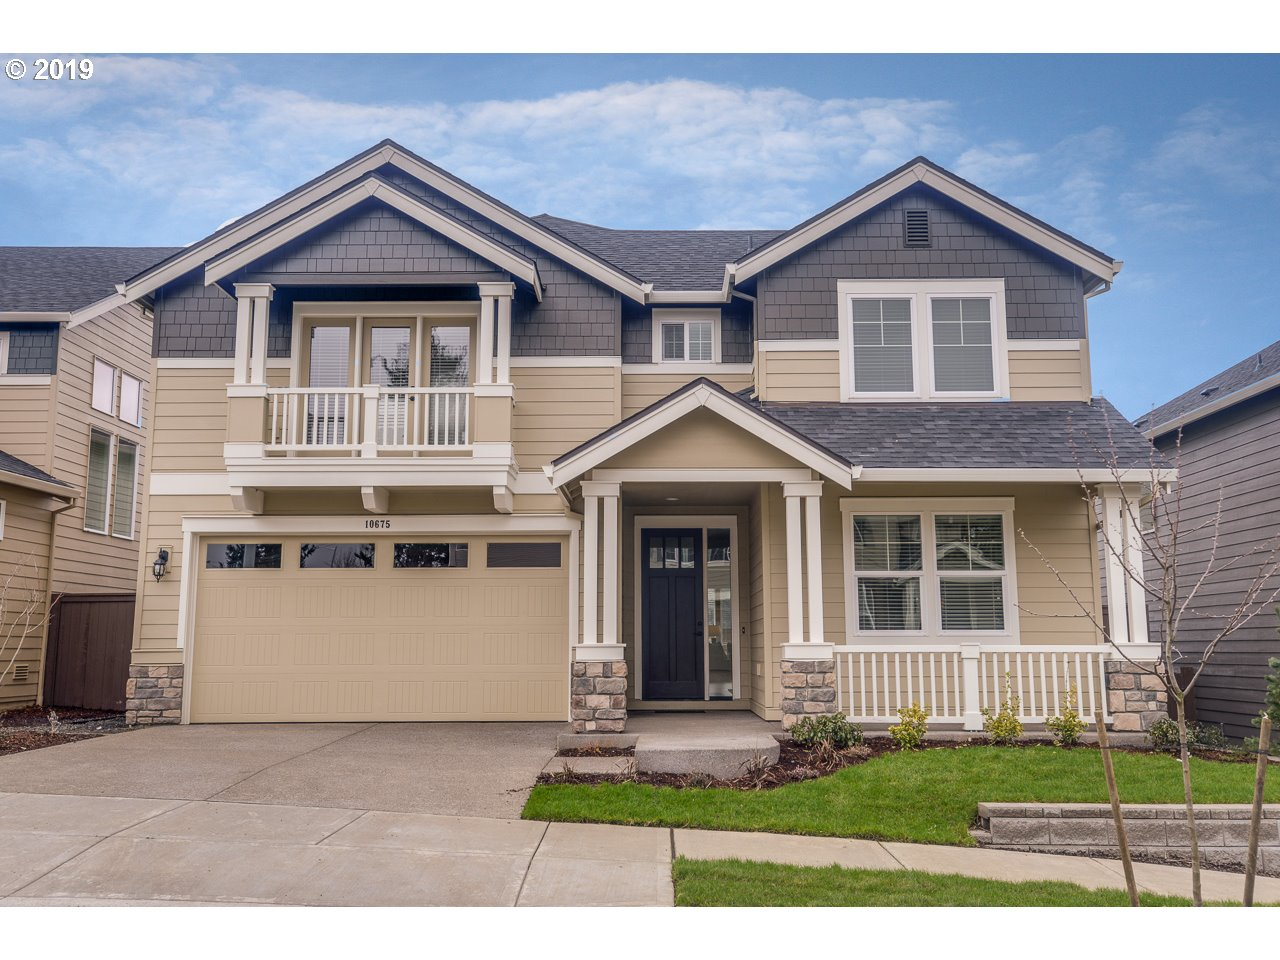 Come see the Mt Hood Views from Westmont! The bright & open Newberry plan features formal dining, living room, large great room w/ fireplace. Gourmet kitchen w/ SS appliances, quartz counter tops, & butlers pantry. Bonus den on the main perfect for an office. Master suite w/ tray ceilings, walk in closet, spa like bath w/ soaking tub. Still time to select finishes. Sales office open 10-6 daily. Pictures of like home & finishes may vary.